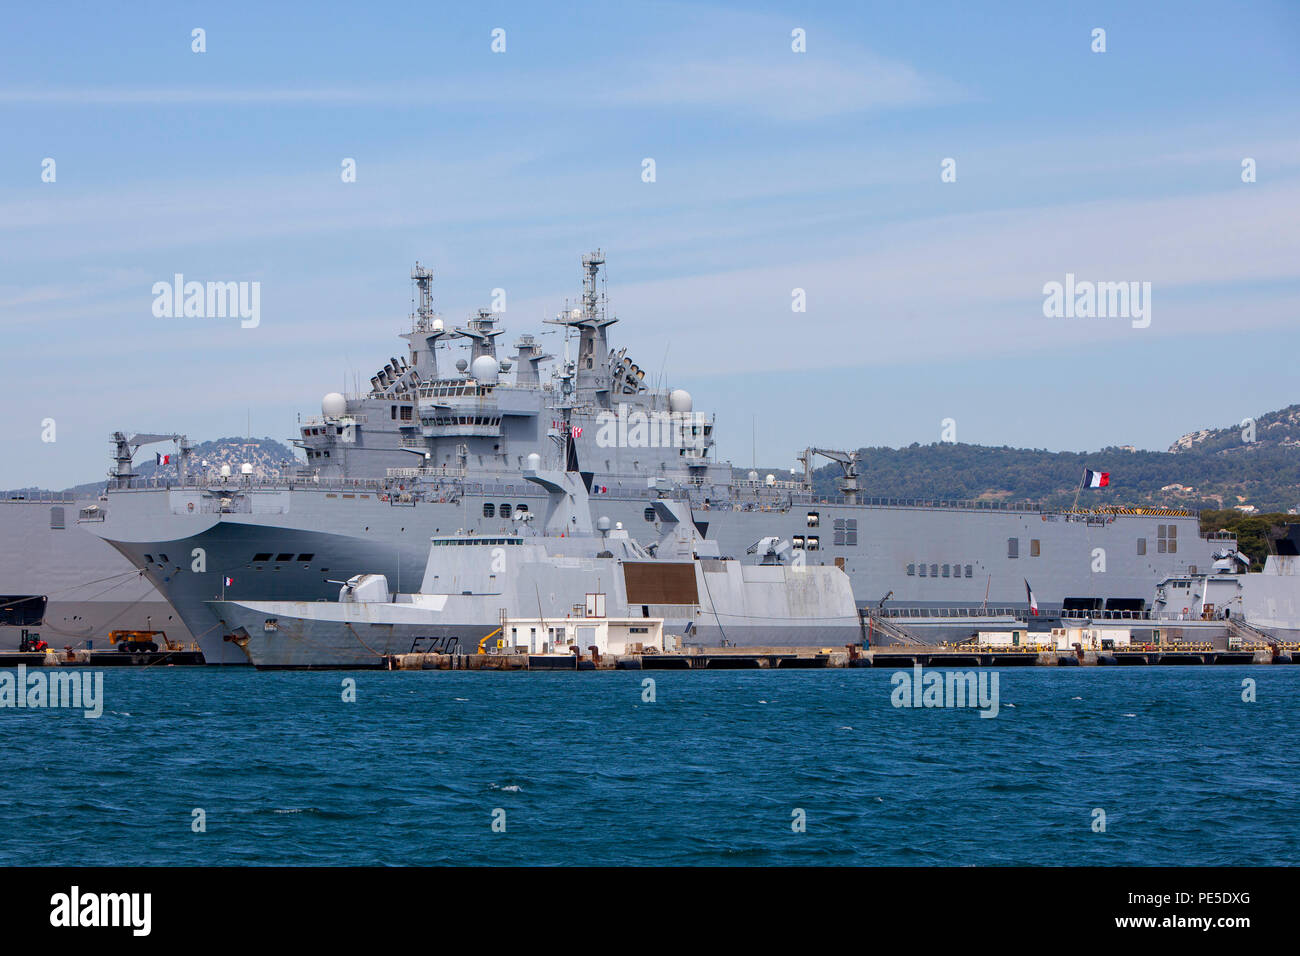 Dixmude L9015 an amphibious assault ship of the French Navy docked at the major French naval base in Toulon in southern France Stock Photo